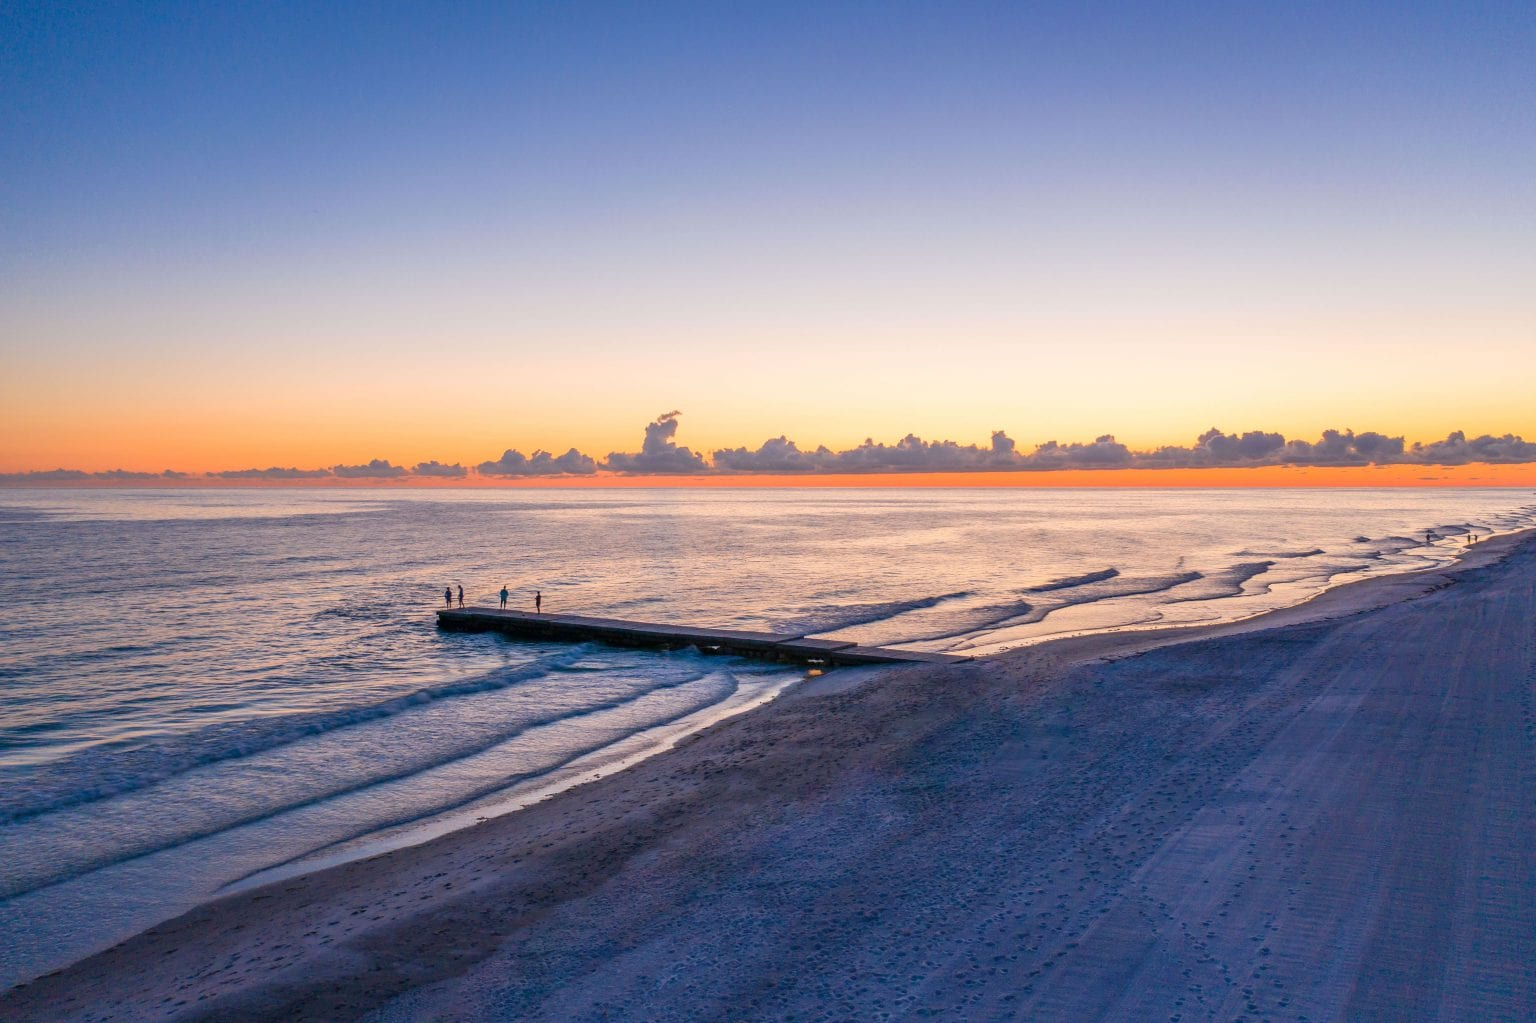 Gulf of Mexico at Sunset